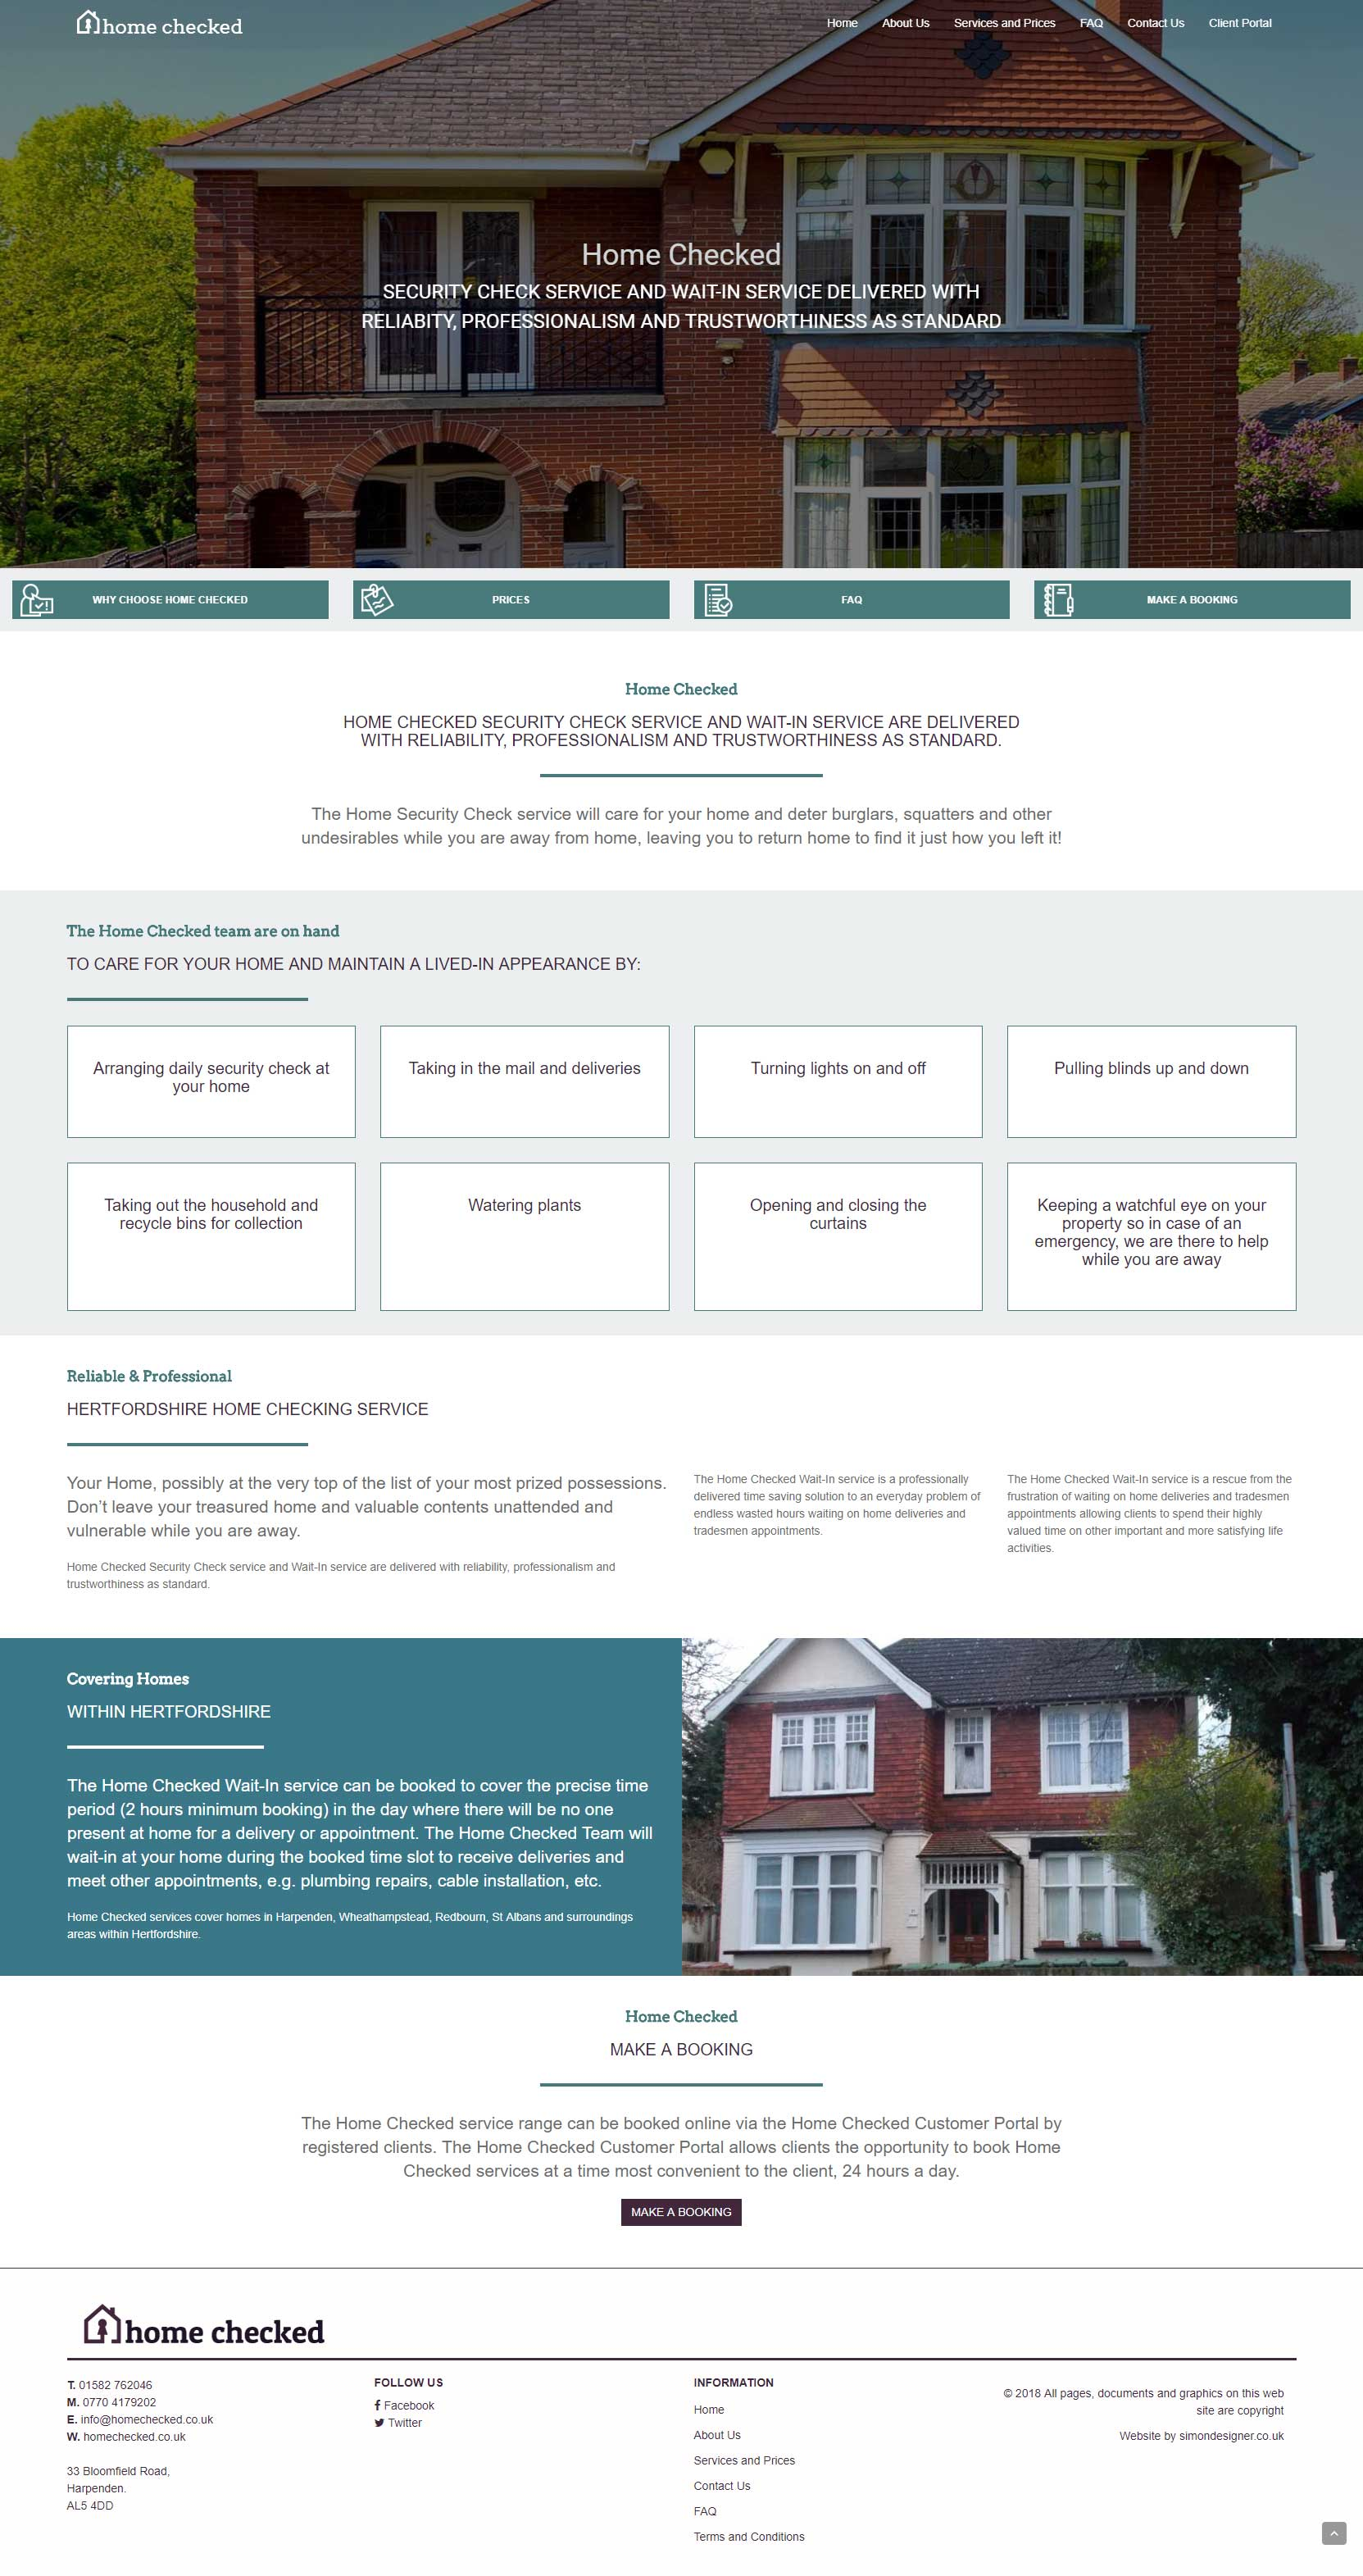 website design - homechecked